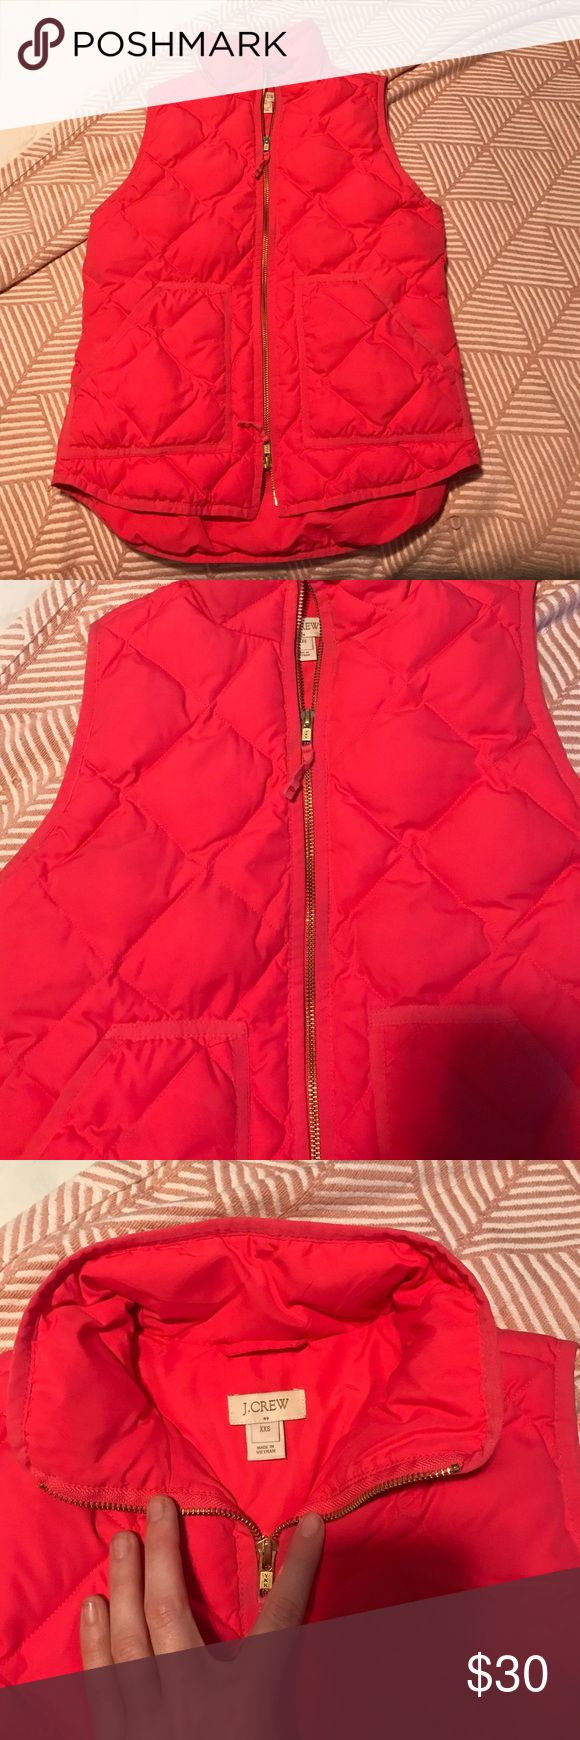 J.Crew pink vest Good condition! Great hot pink color. Size xxs but fits like a small J. Crew Jackets & Coats Vests